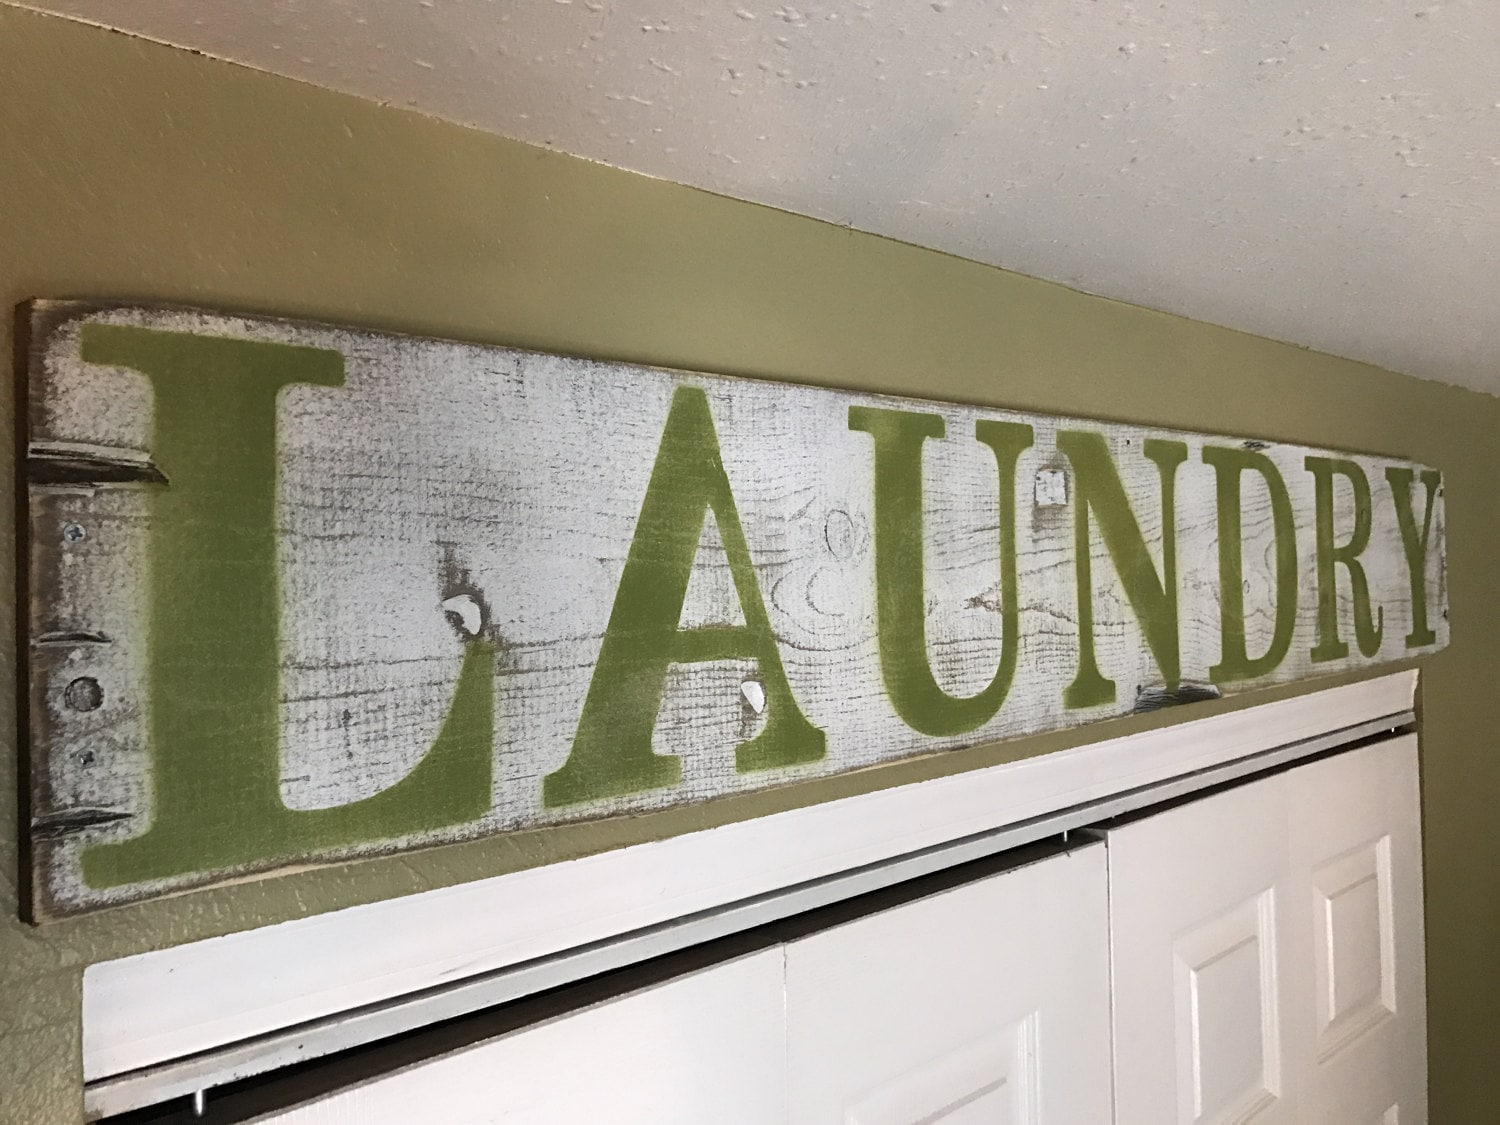 Laundry Room Decor Laundry Decor Laundry Room Decor Laundry Decorations Laundry Room Decorations Decor For Laundry Room